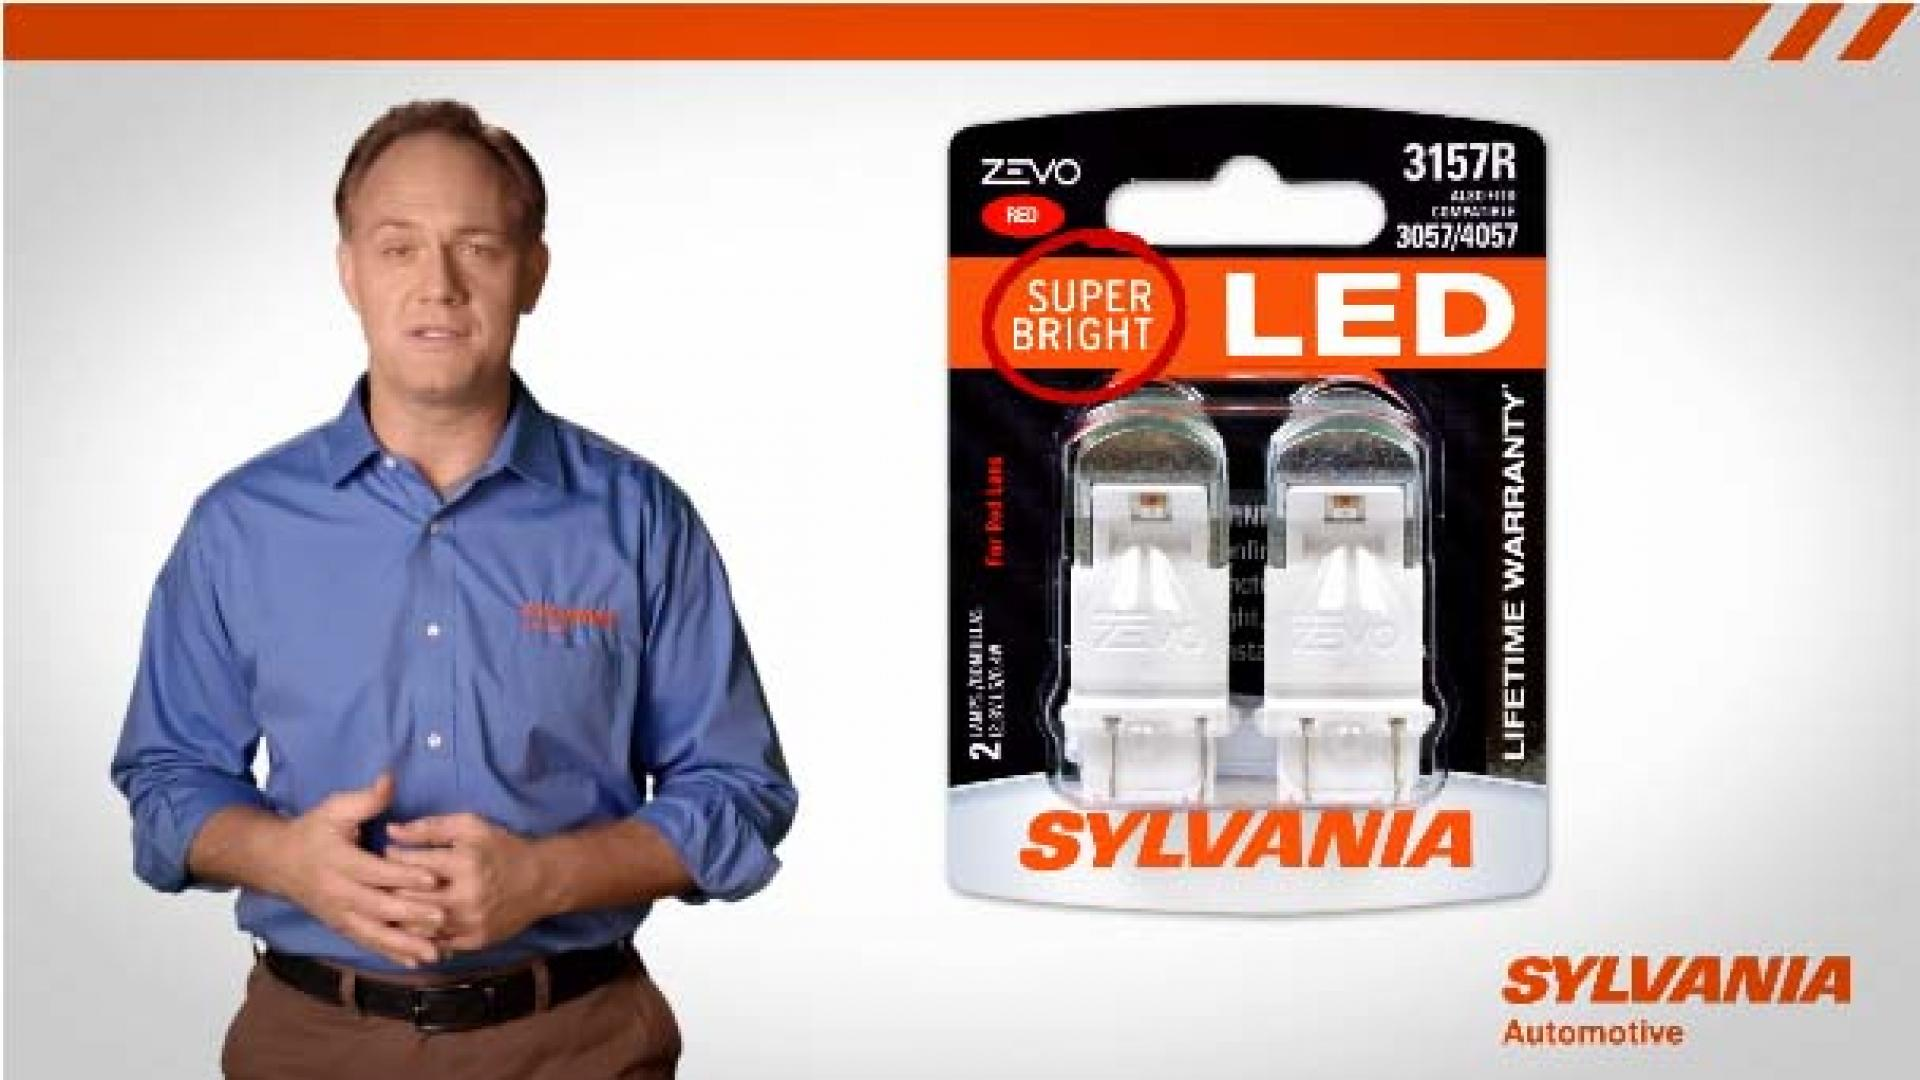 How Important is Quality of LED Bulb? When purchasing a Sylvania LED bulb you are getting a quality LED. It is not about how many LEDs there are but how well the quality is that determines the performance of the bulb.